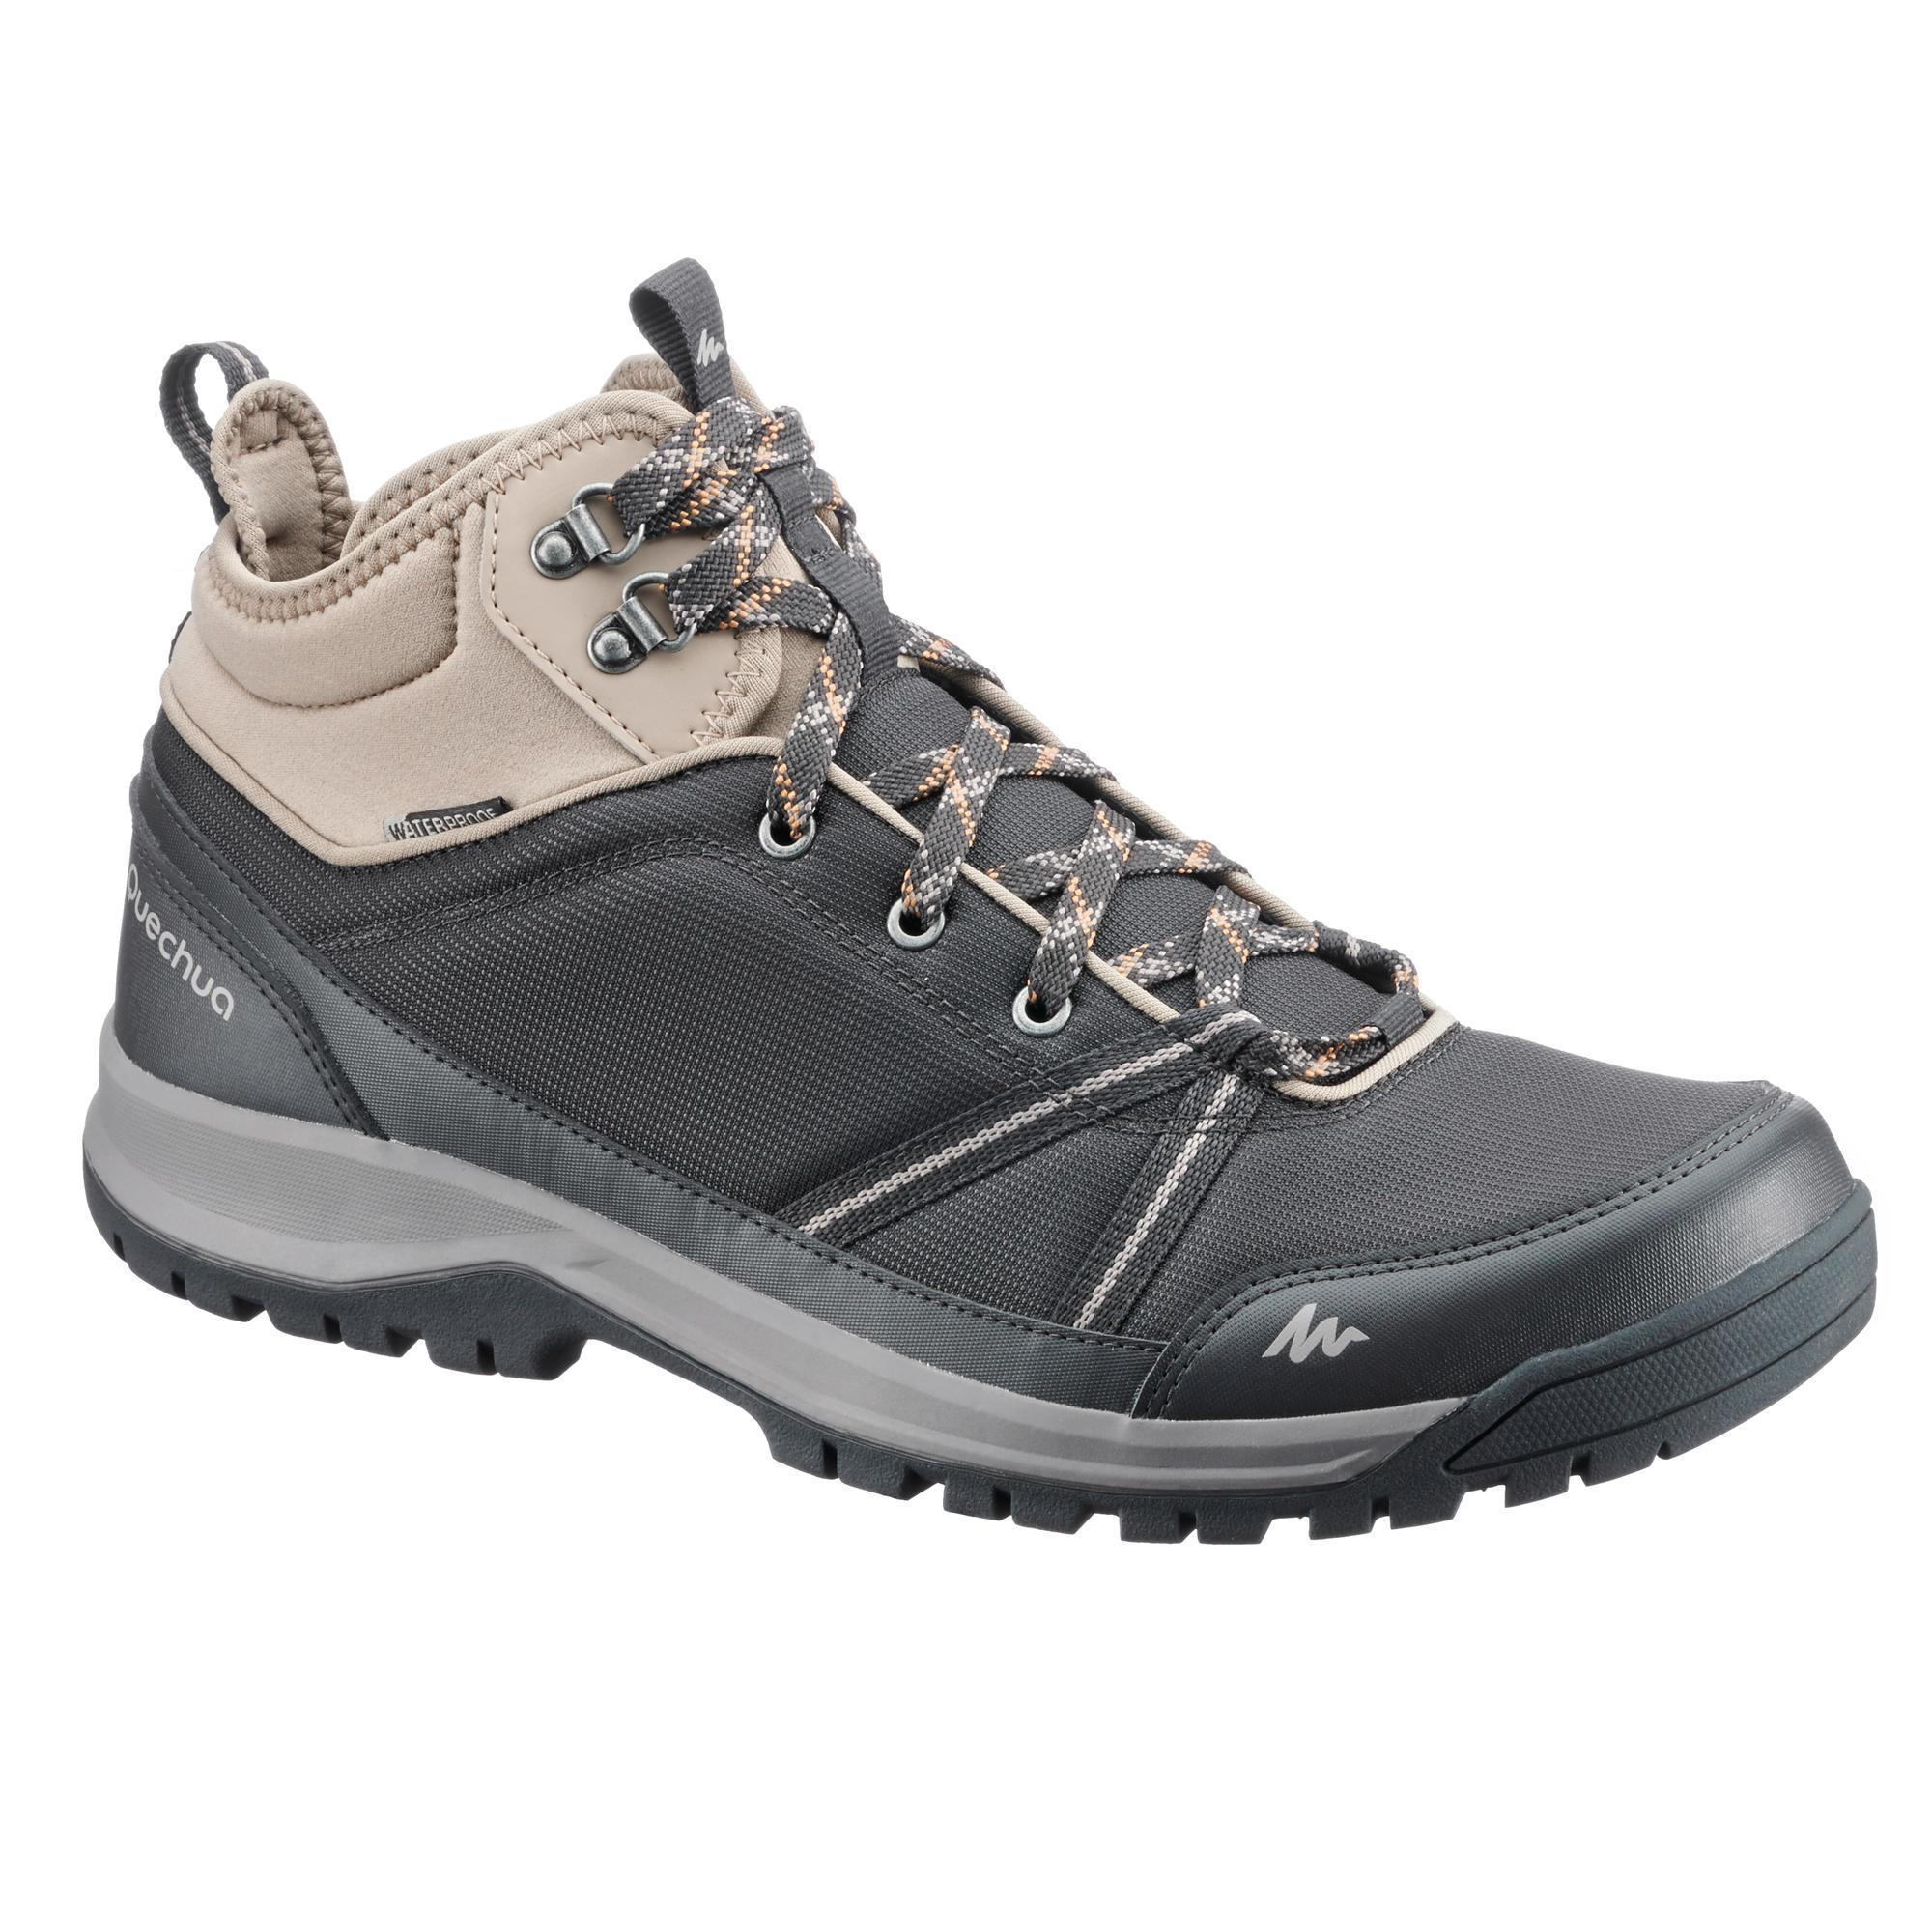 hiking comfortable comforter trail equipment products boots most reviews pro hillsound crampon